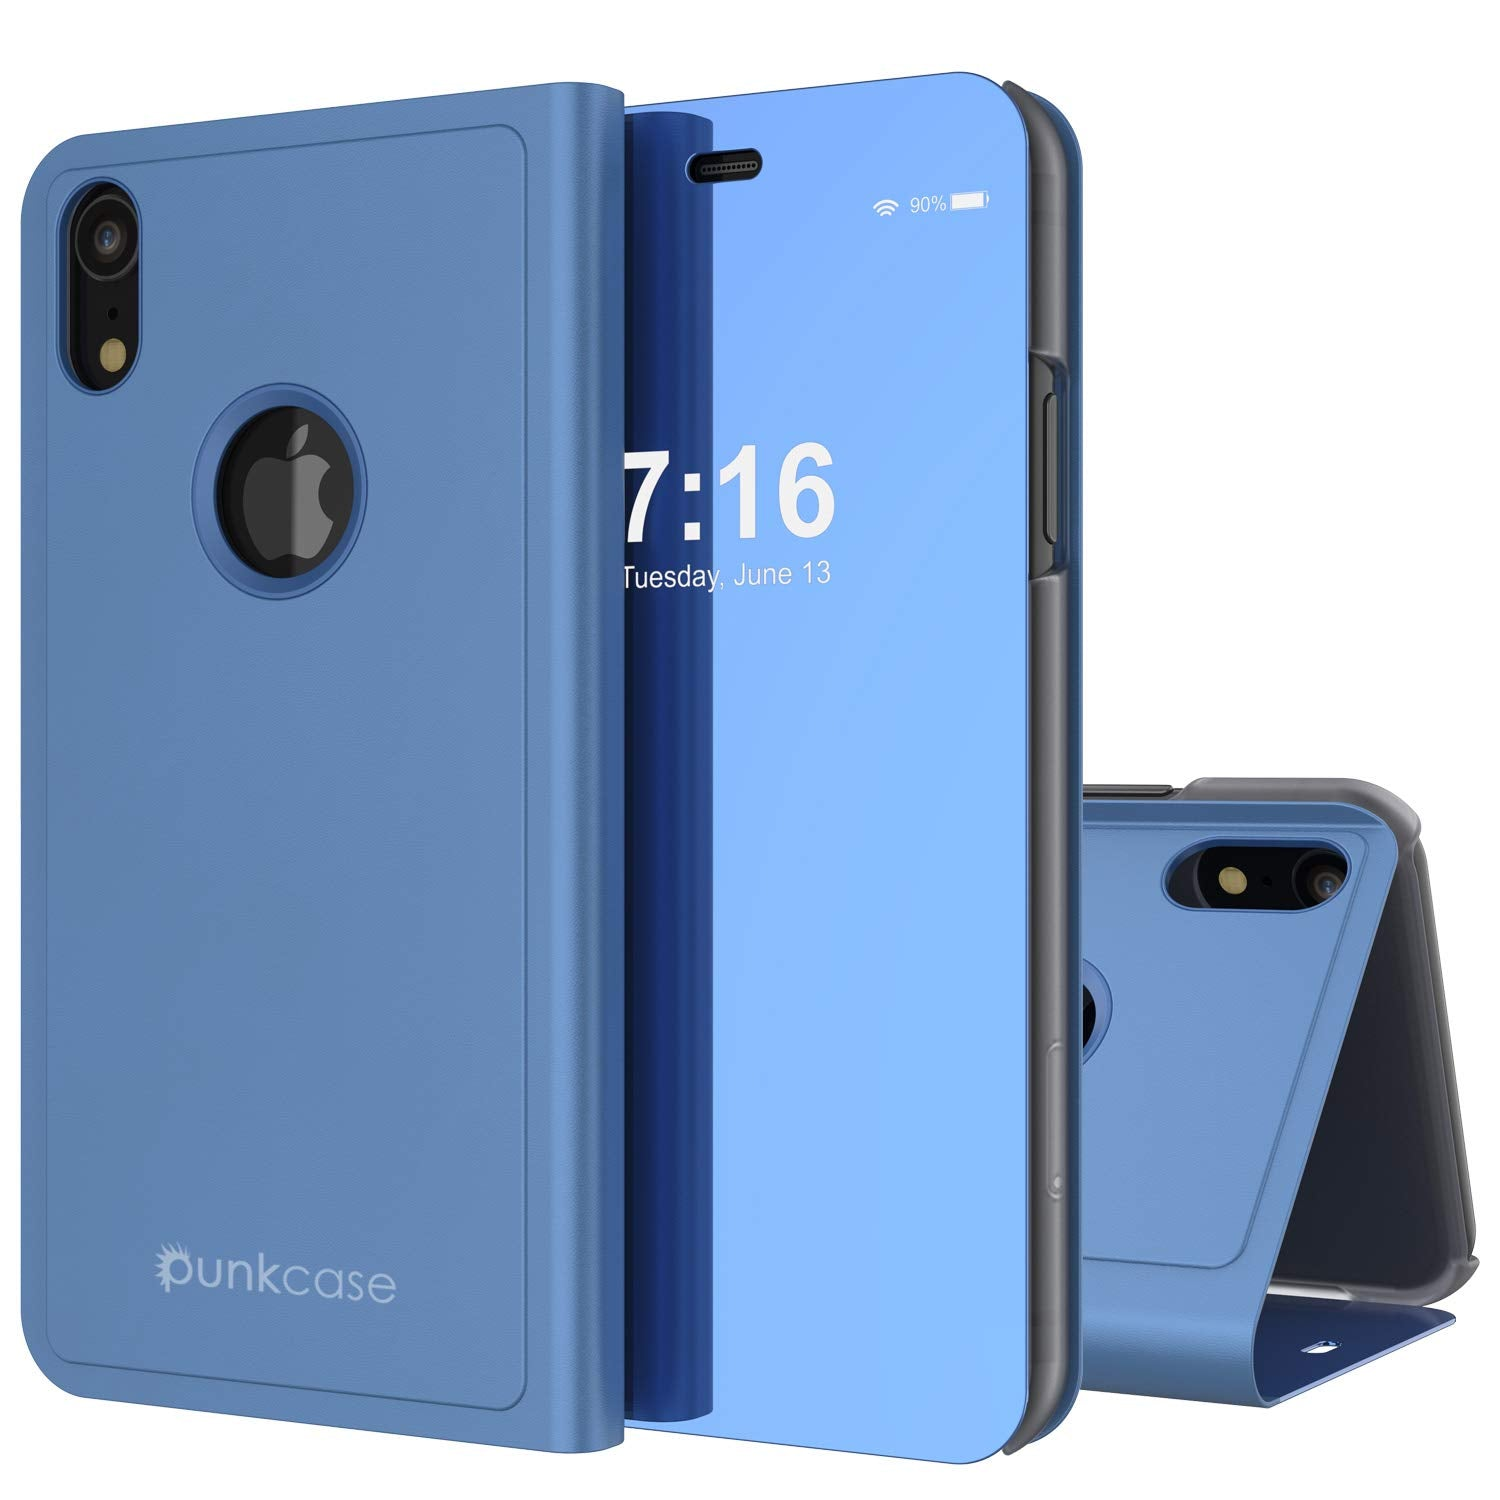 Punkcase iPhone XR Reflector Case Protective Flip Cover [Blue]